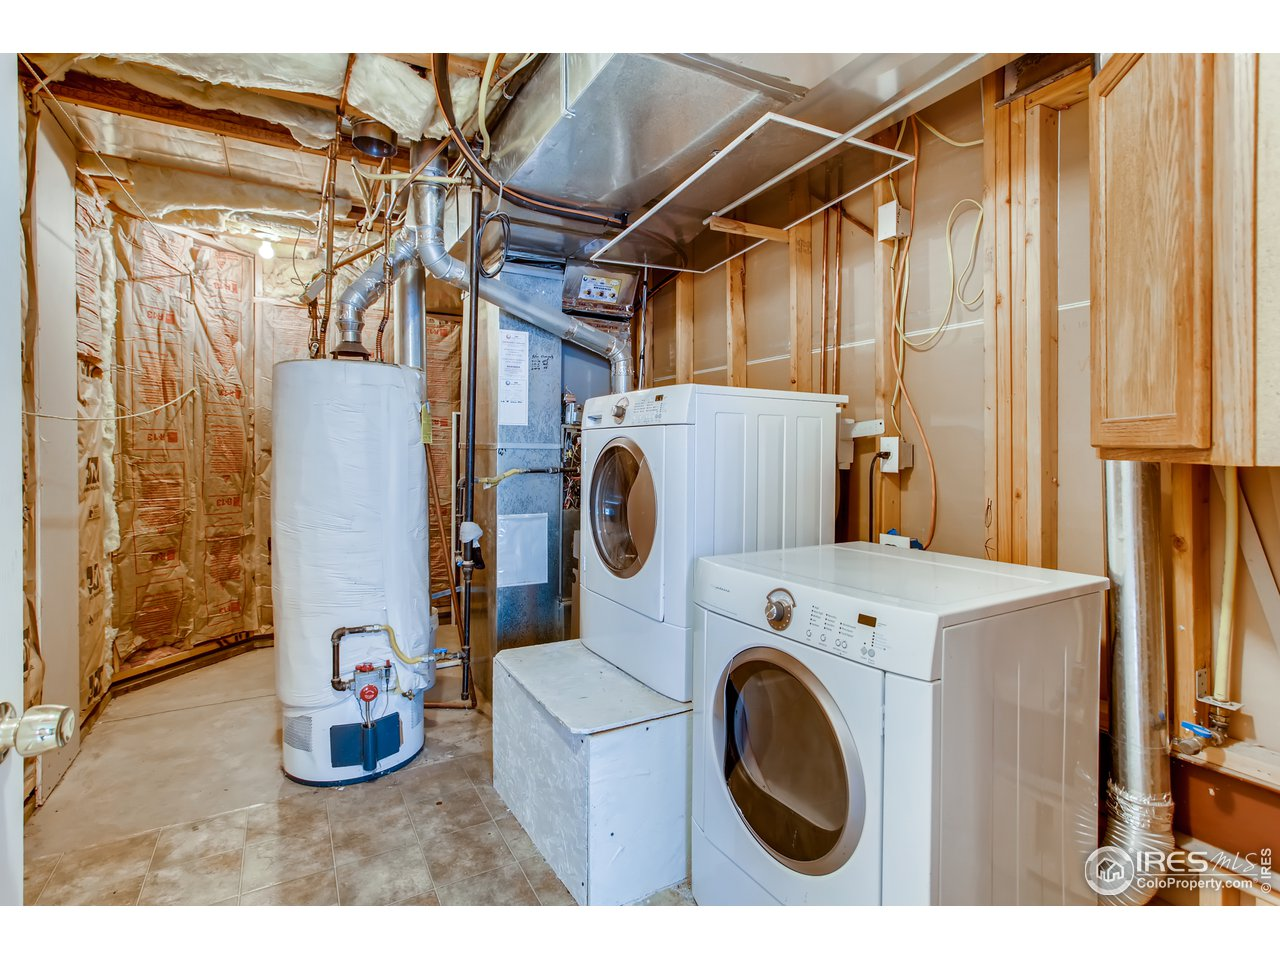 Laundry Room/Mechanical Room. Washer and Dryer Included